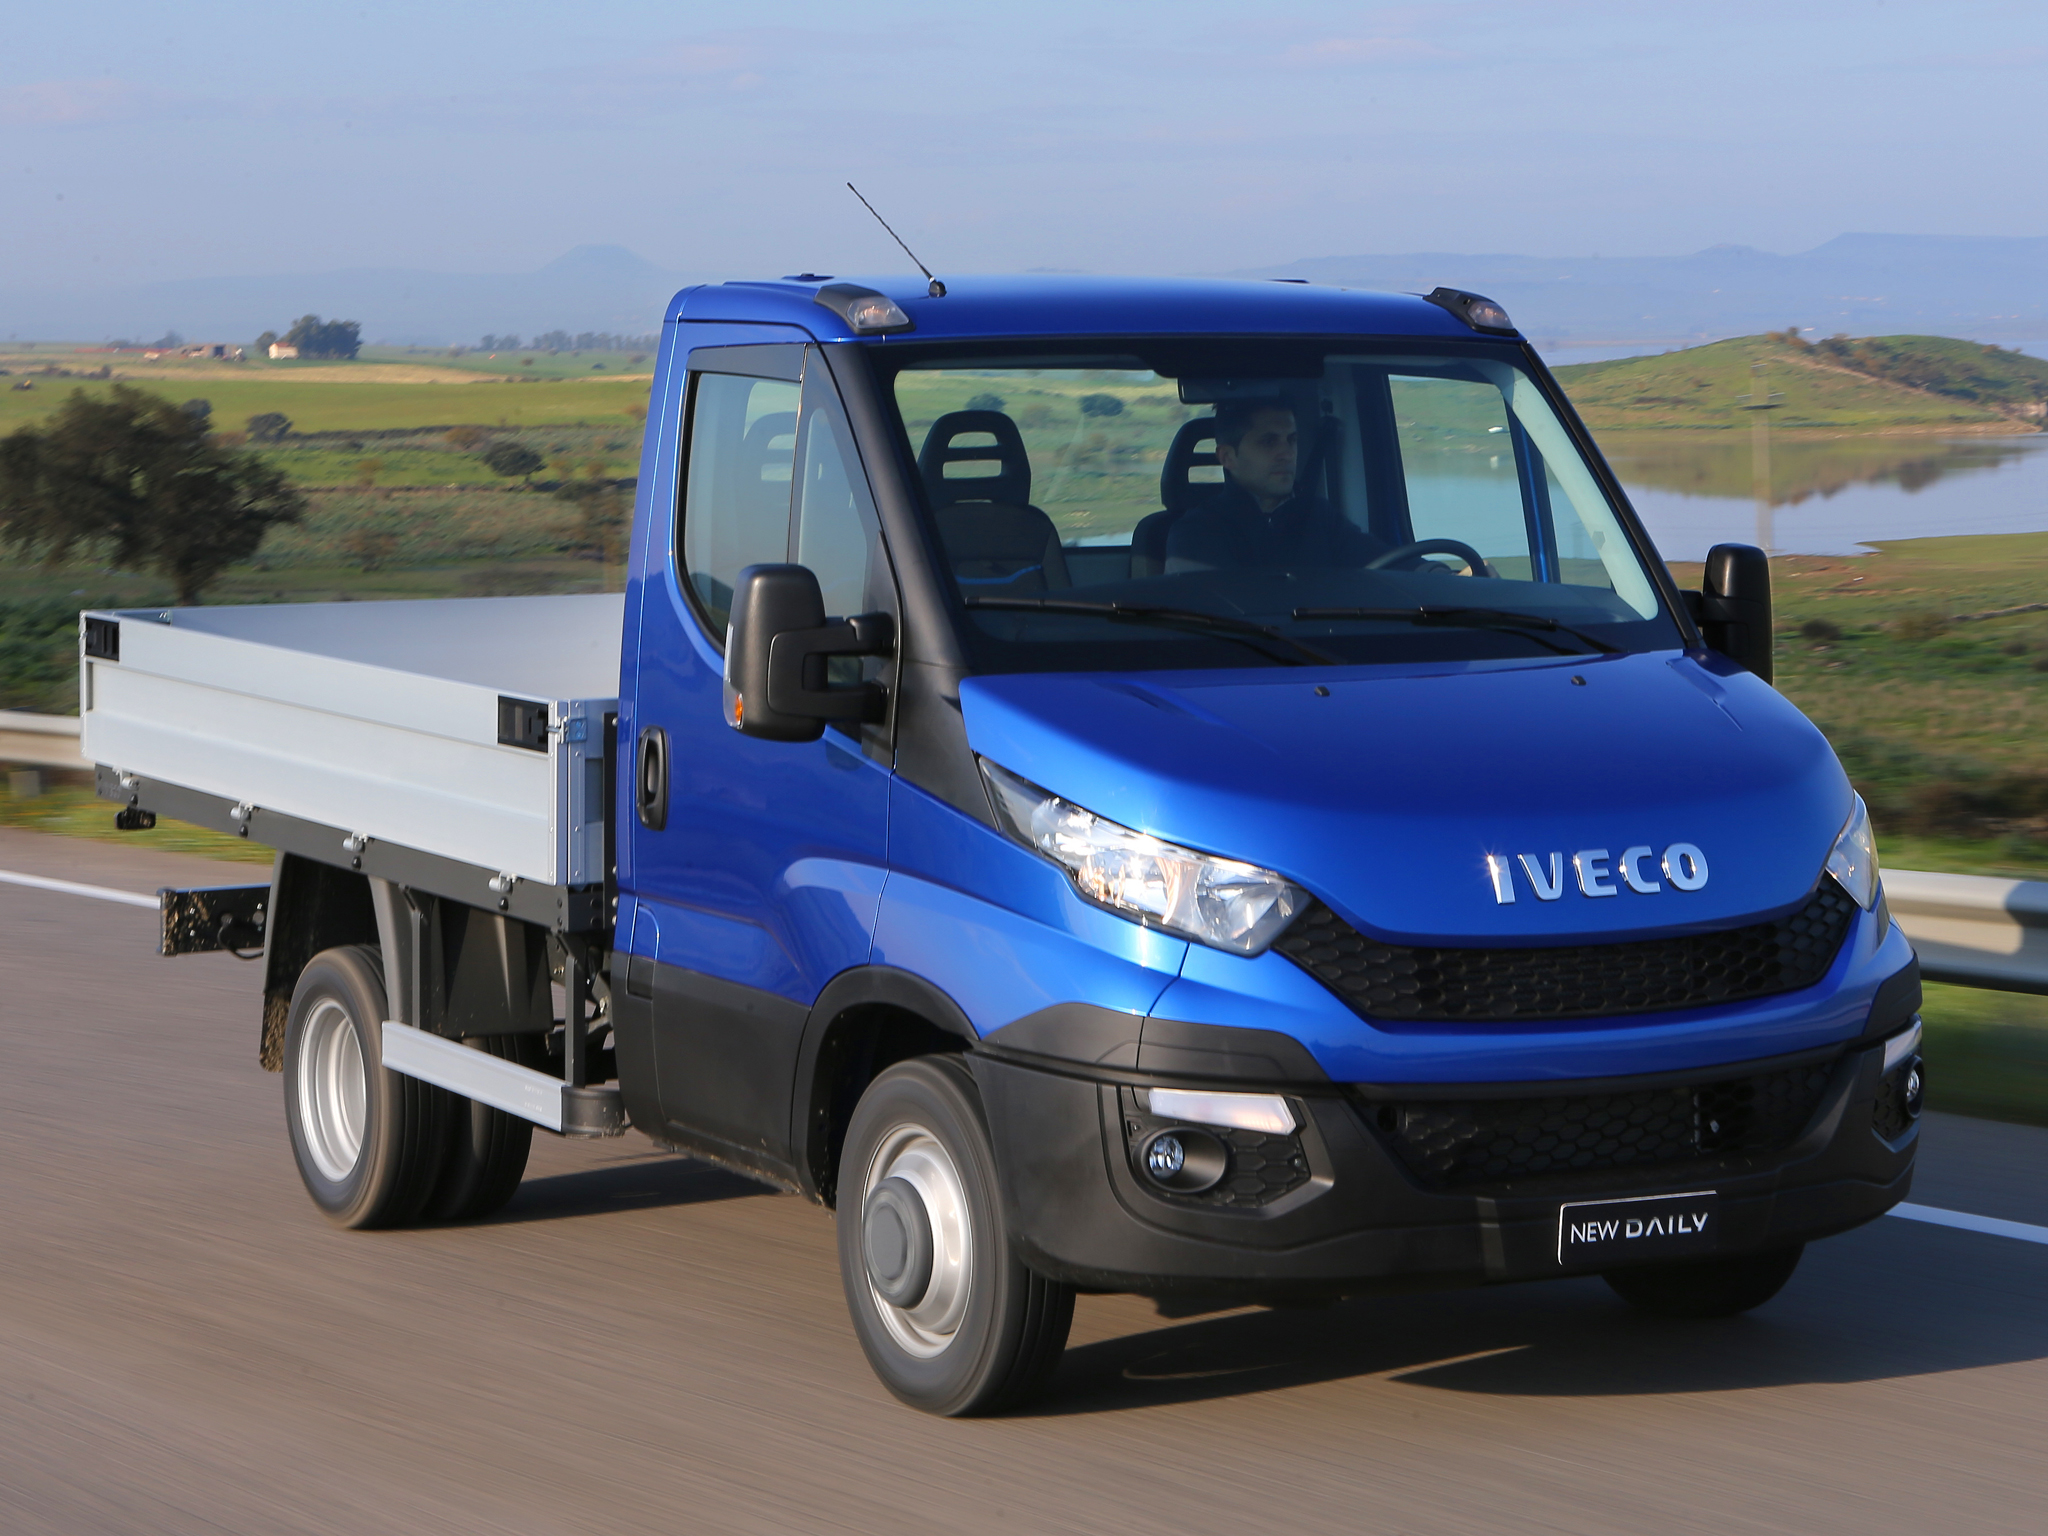 2014 - [Iveco] Daily - Page 3 Iveco-reveals-the-new-daily-for-2014-say-it-s-80-redesigned-photo-gallery_5